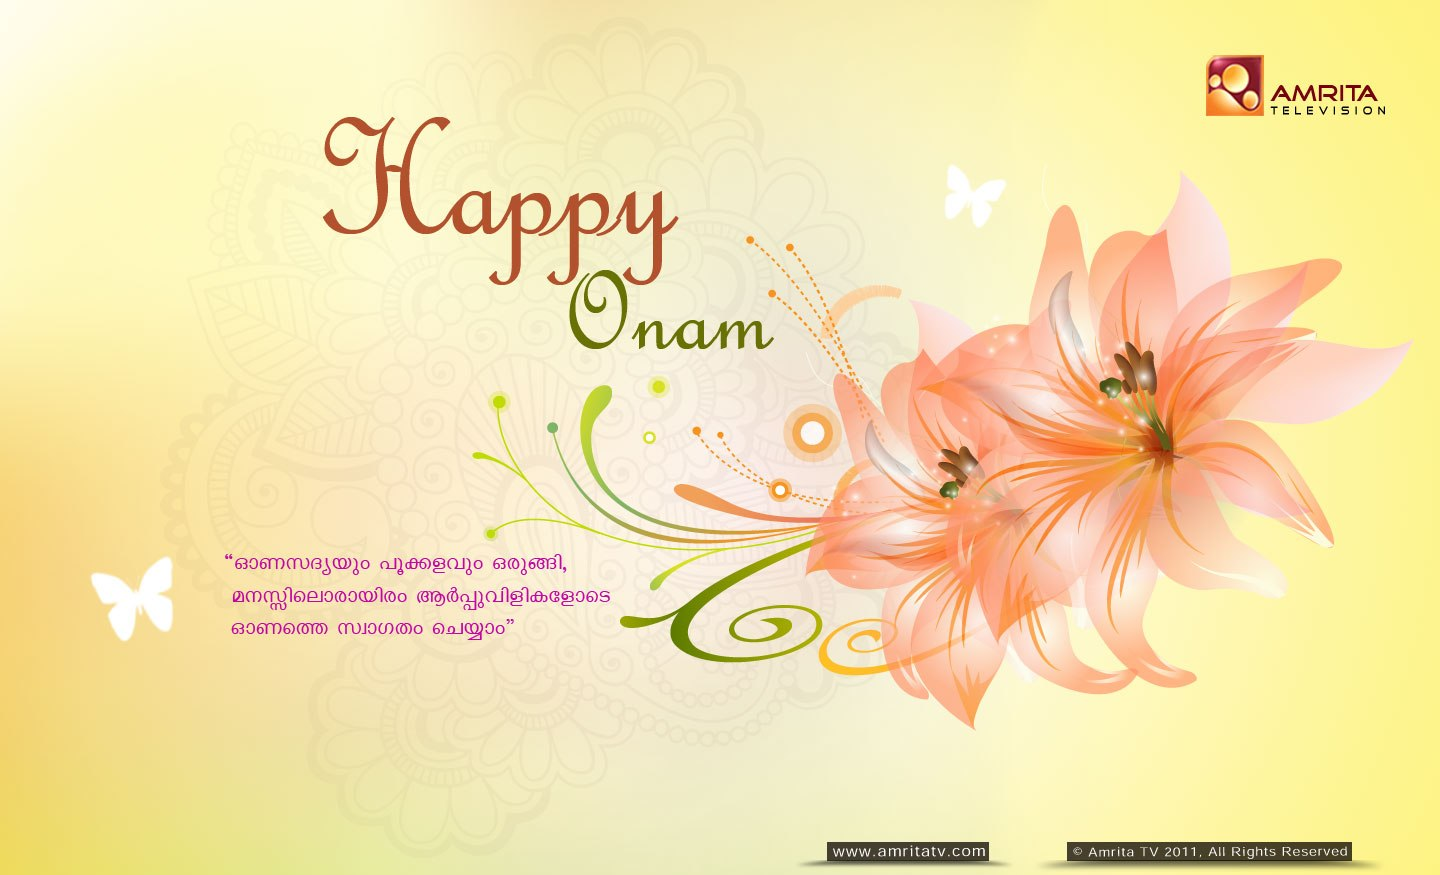 Happy Thiru Onam Images for Free Download